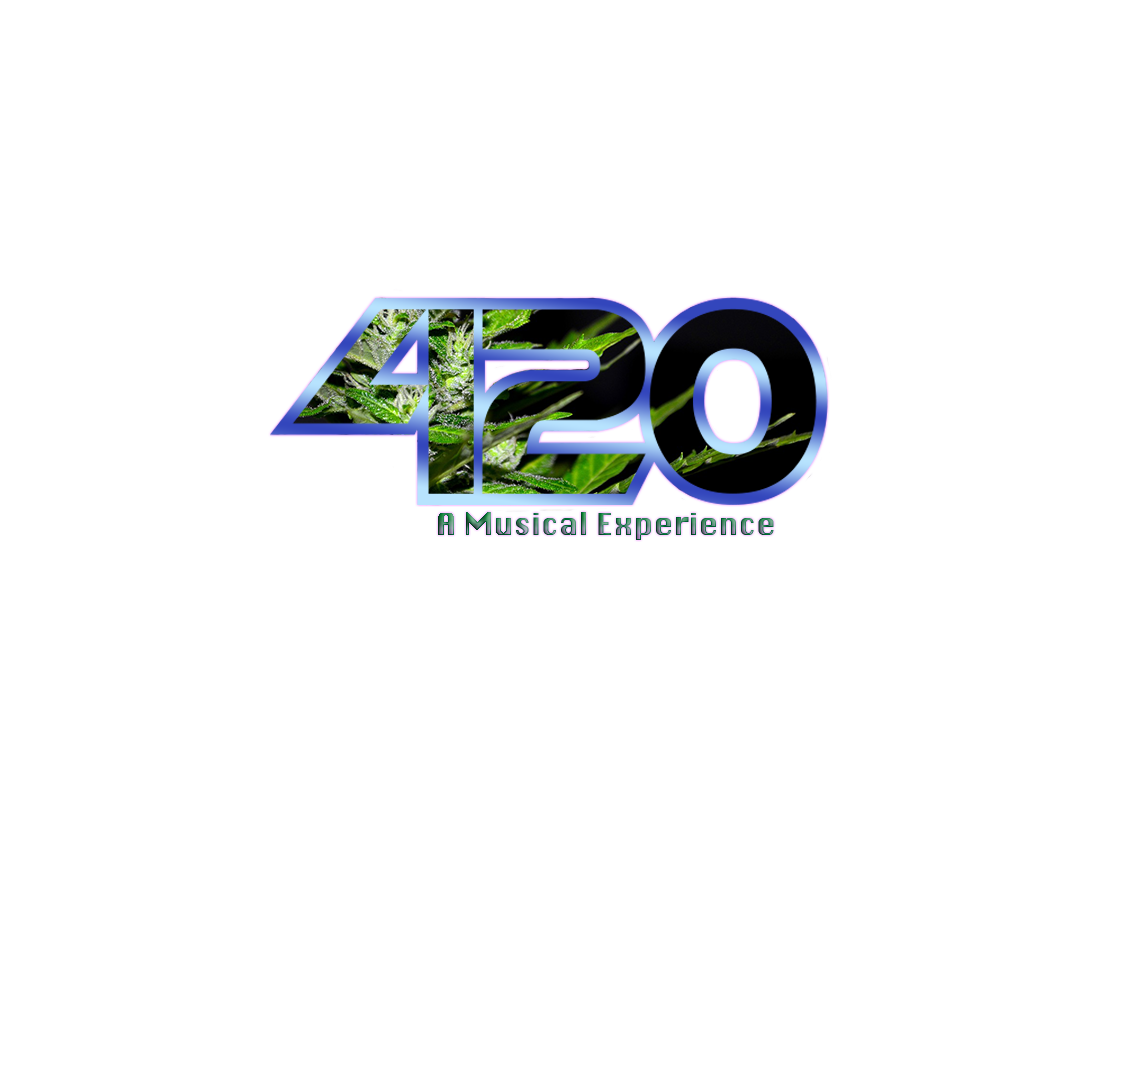 420: A Musical Experience